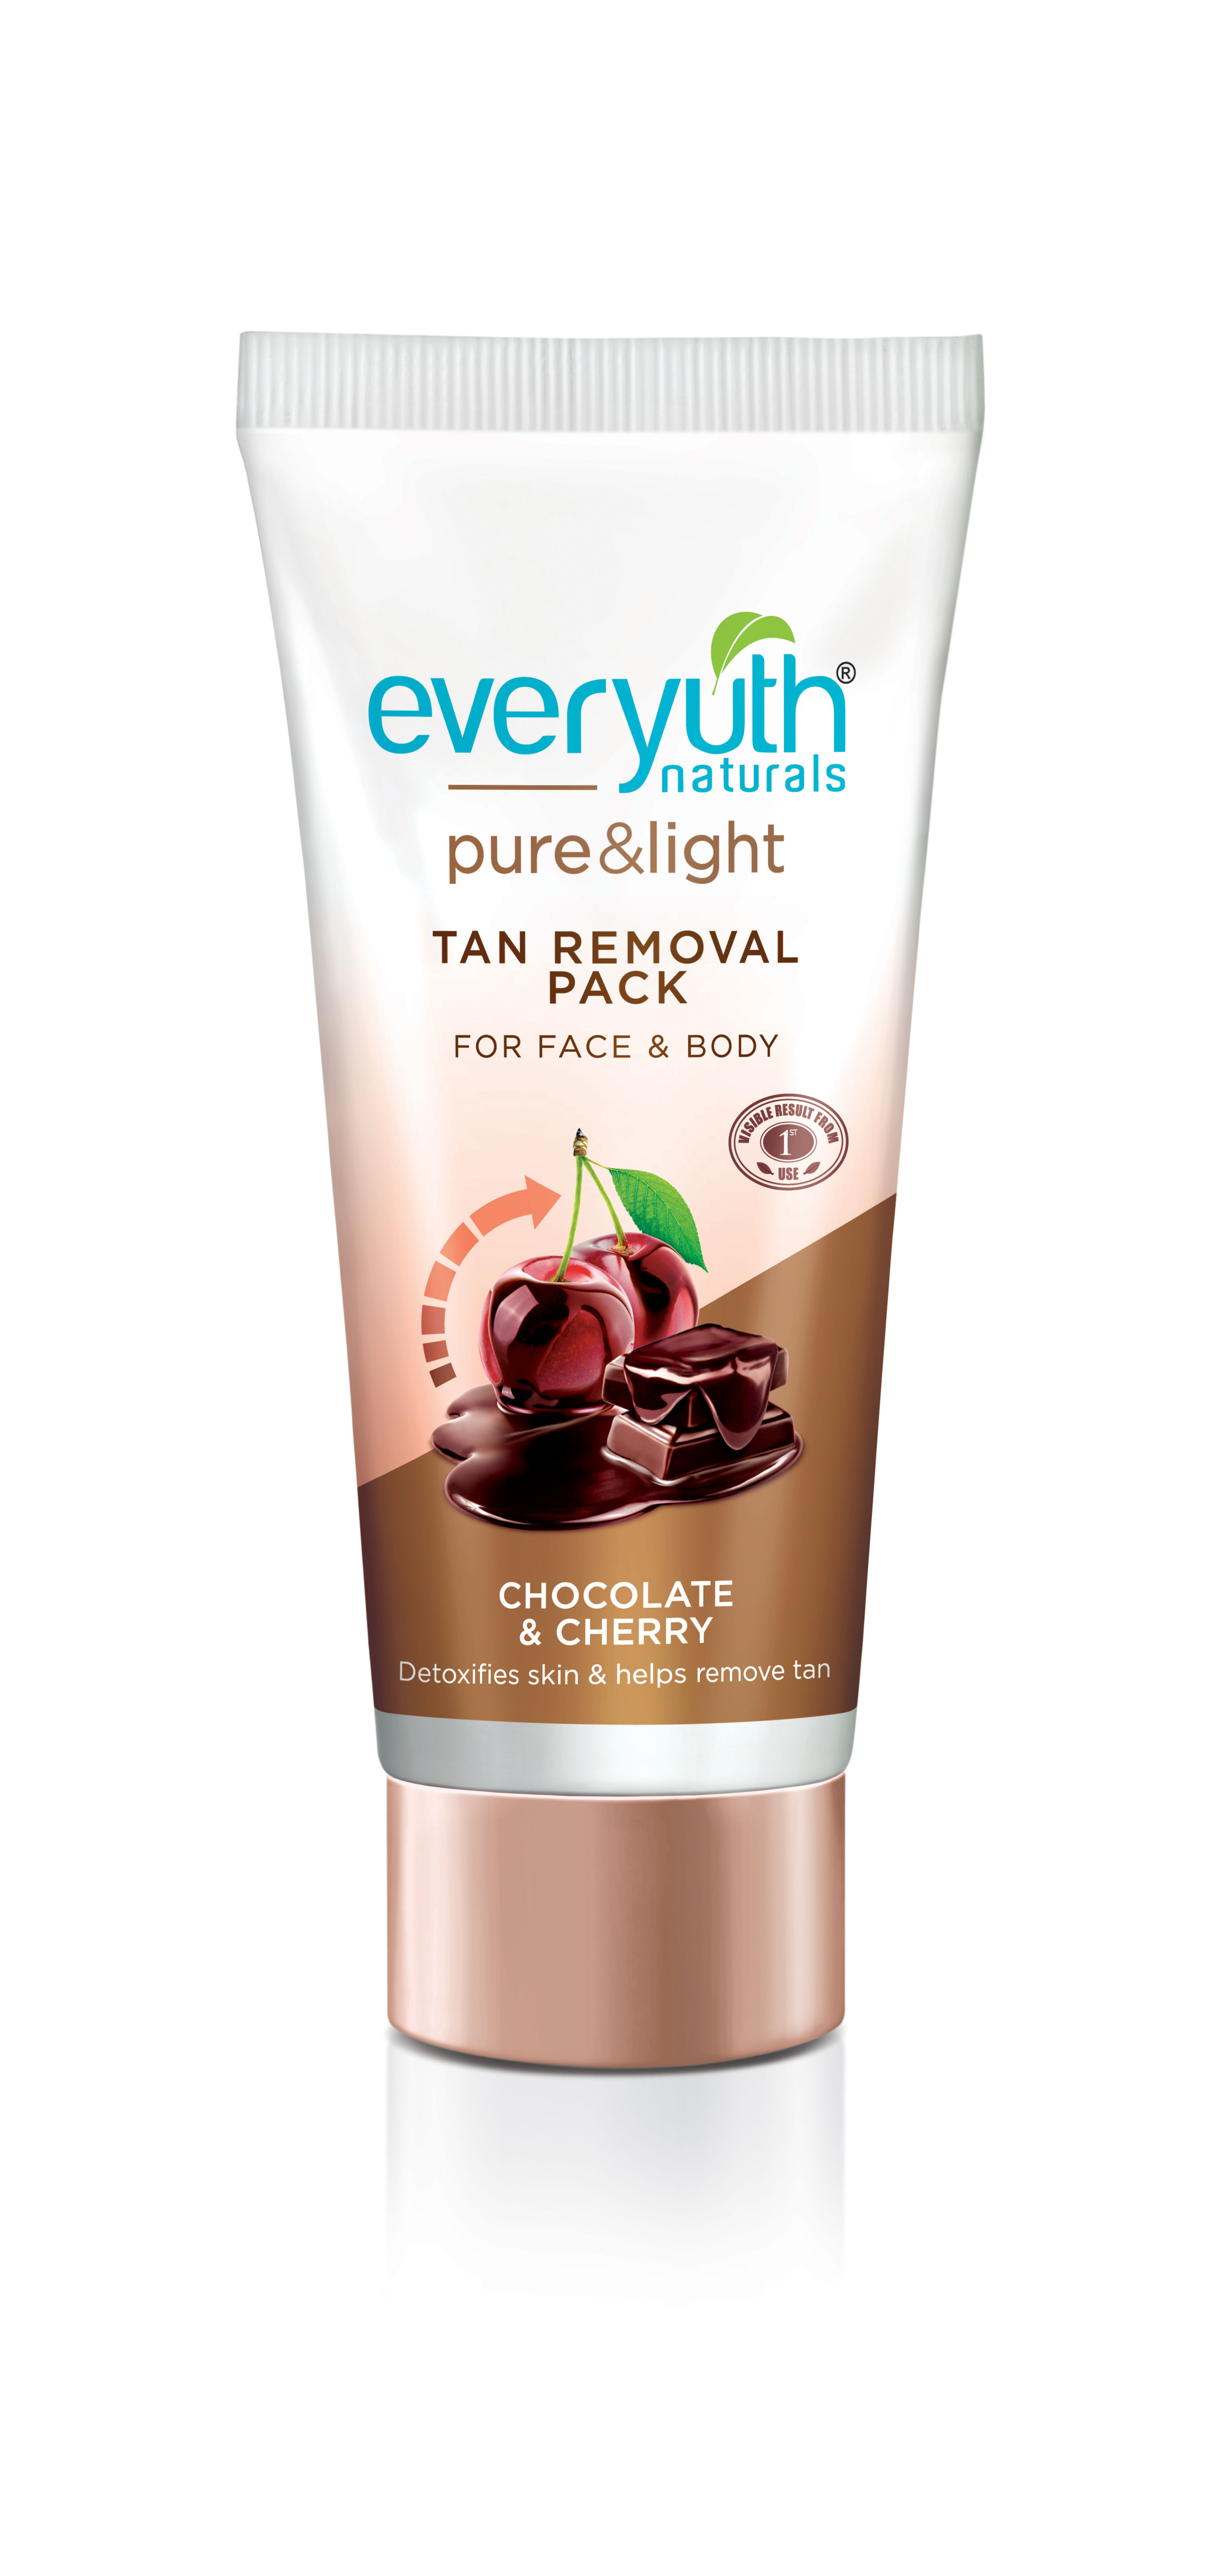 b9a28a775ccf8 Everyuth Naturals Chocolate And Cherry Tan Removal Face & Body Pack(50gm)